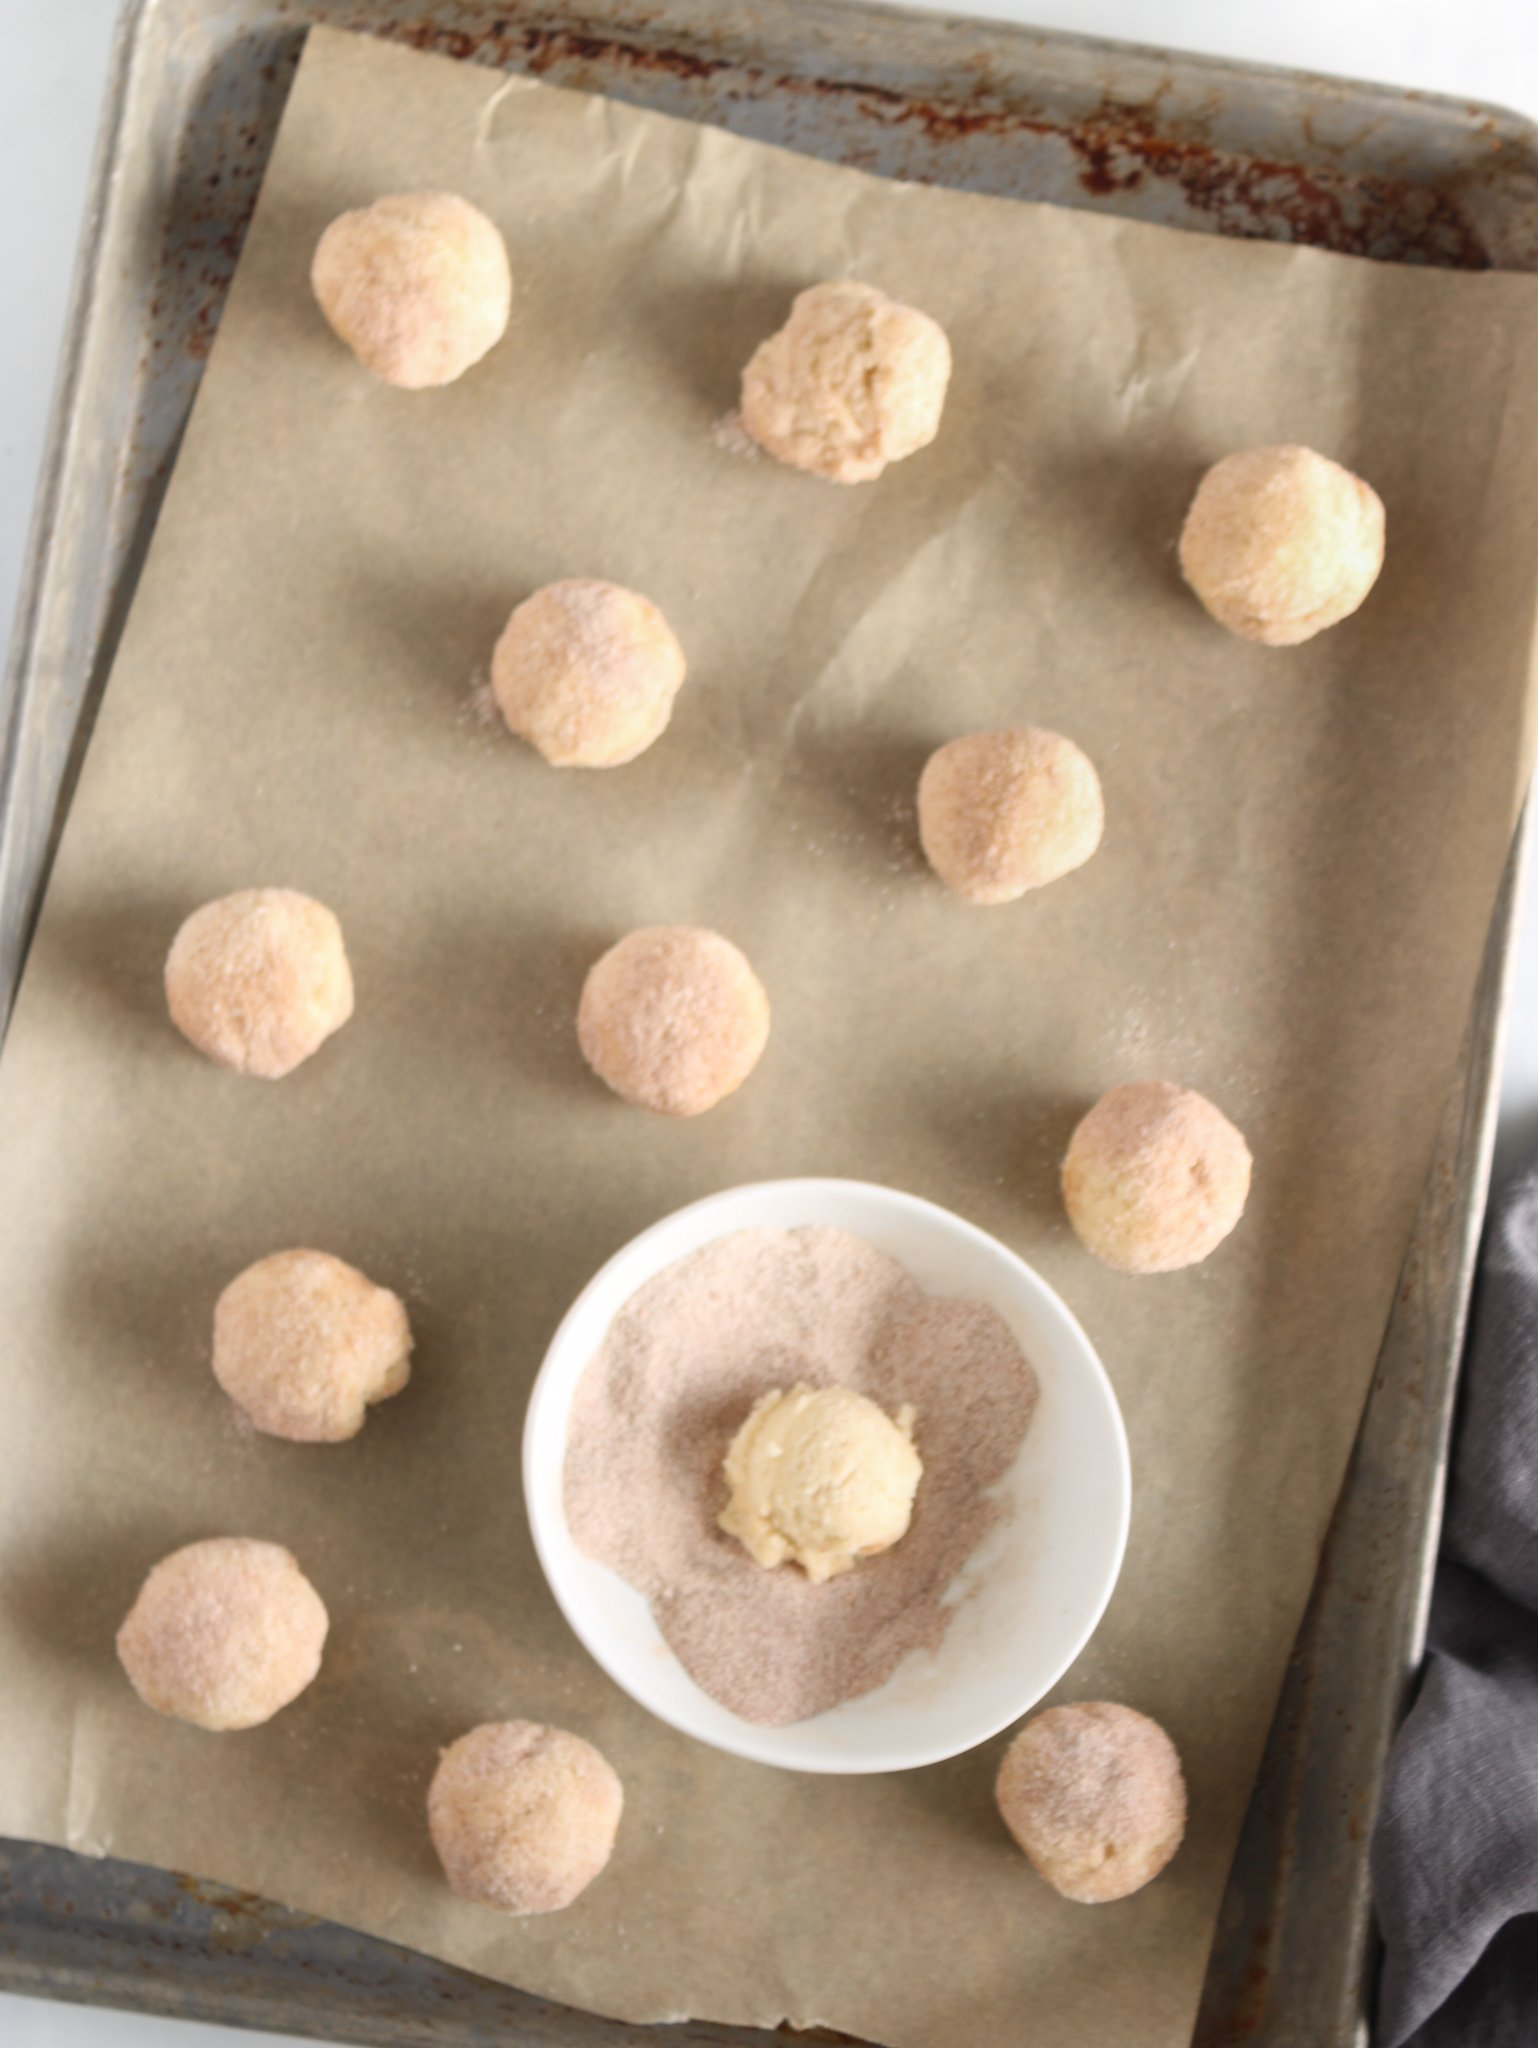 gluten free snickerdoodles on a parchment lined baking sheet being dipped into cinnamon and sugar before being baked in the oven.